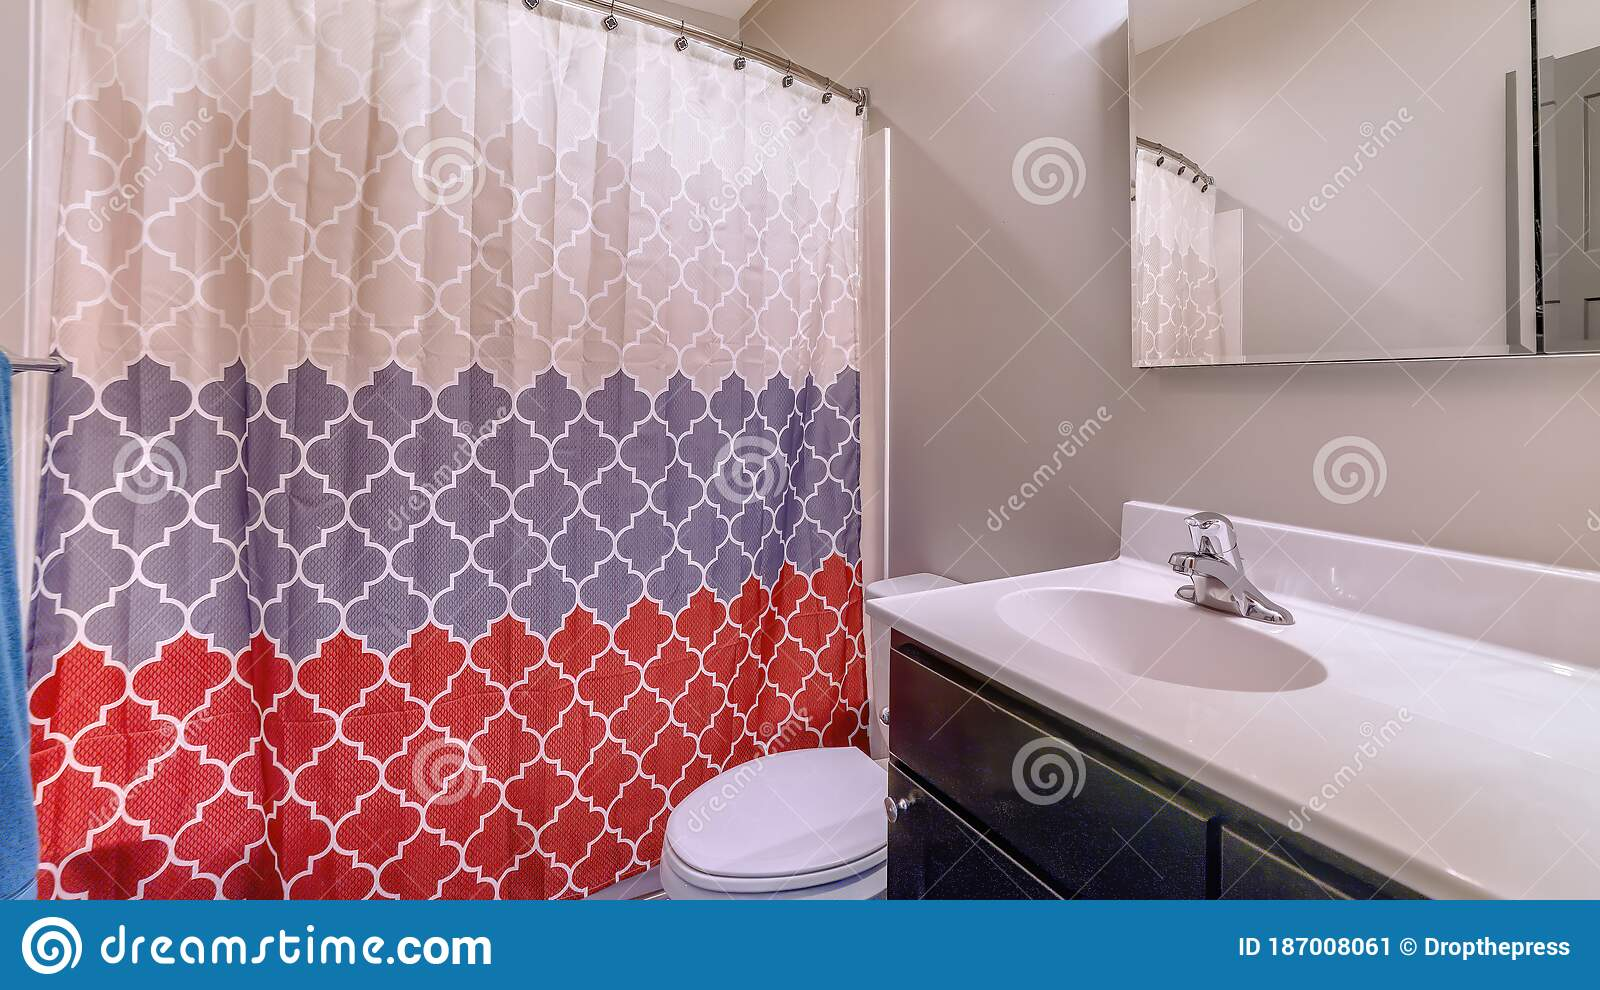 Panorama Home Bathroom With Toilet Vanity Area And Bathtub Conceled By Colorful Curtain Stock Image Image Of Mirror Room 187008061